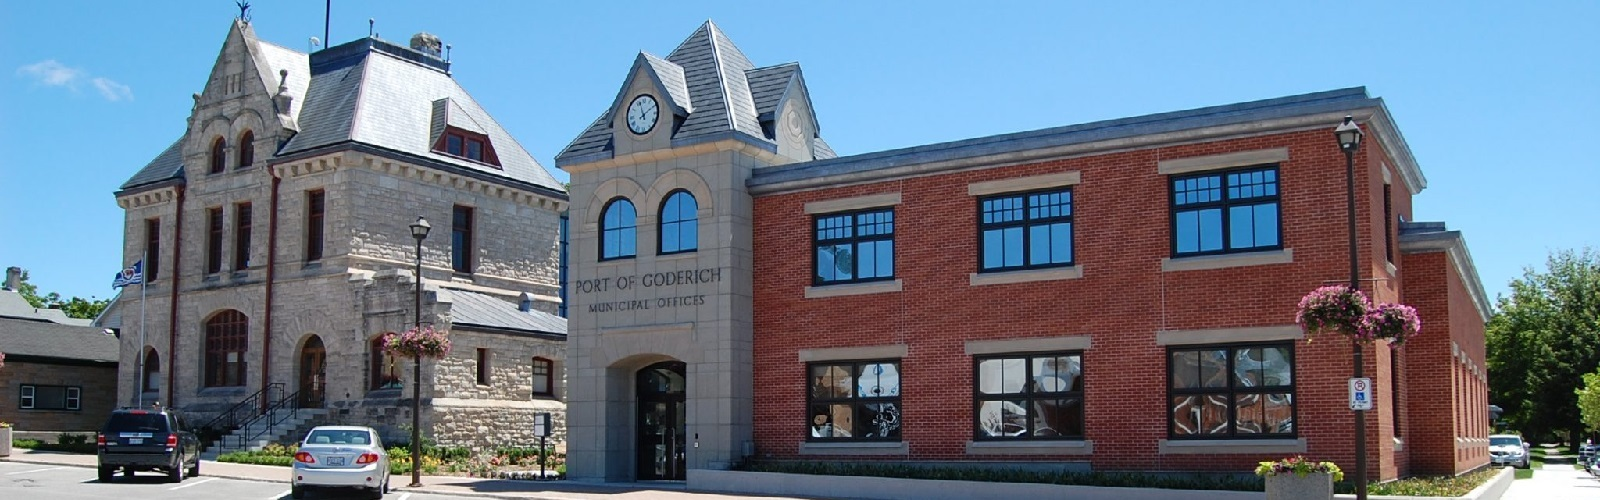 Goderich Town Hall